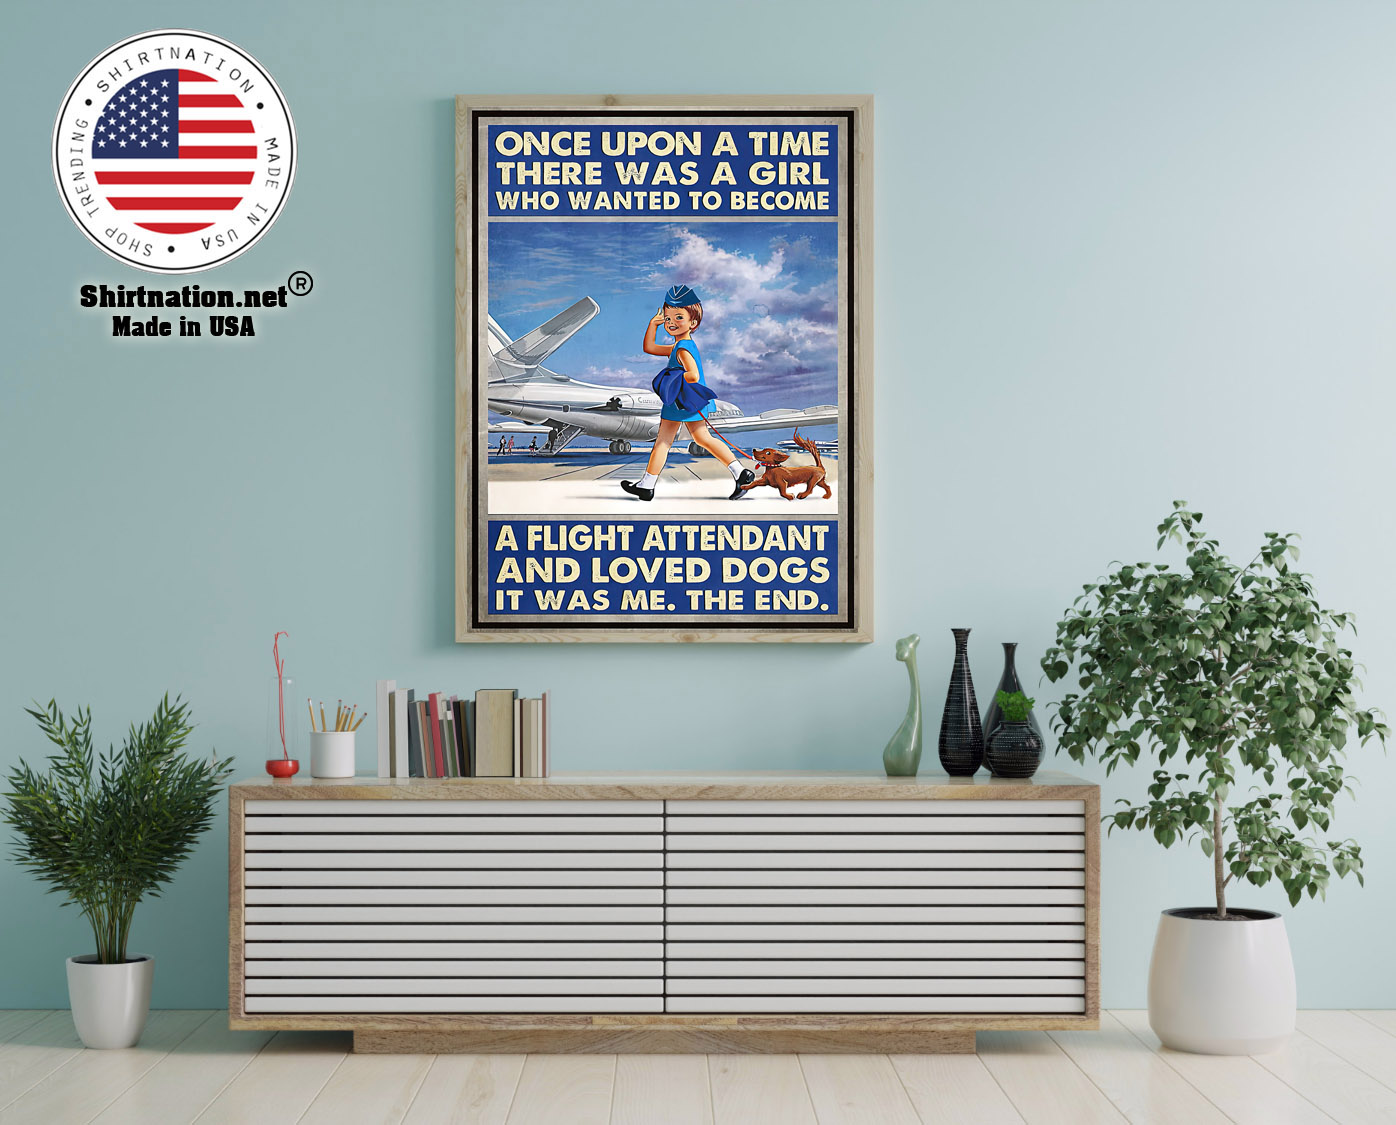 Once upon a time there was a girl who wanted to become a flight attendant and loved dogs poster 12